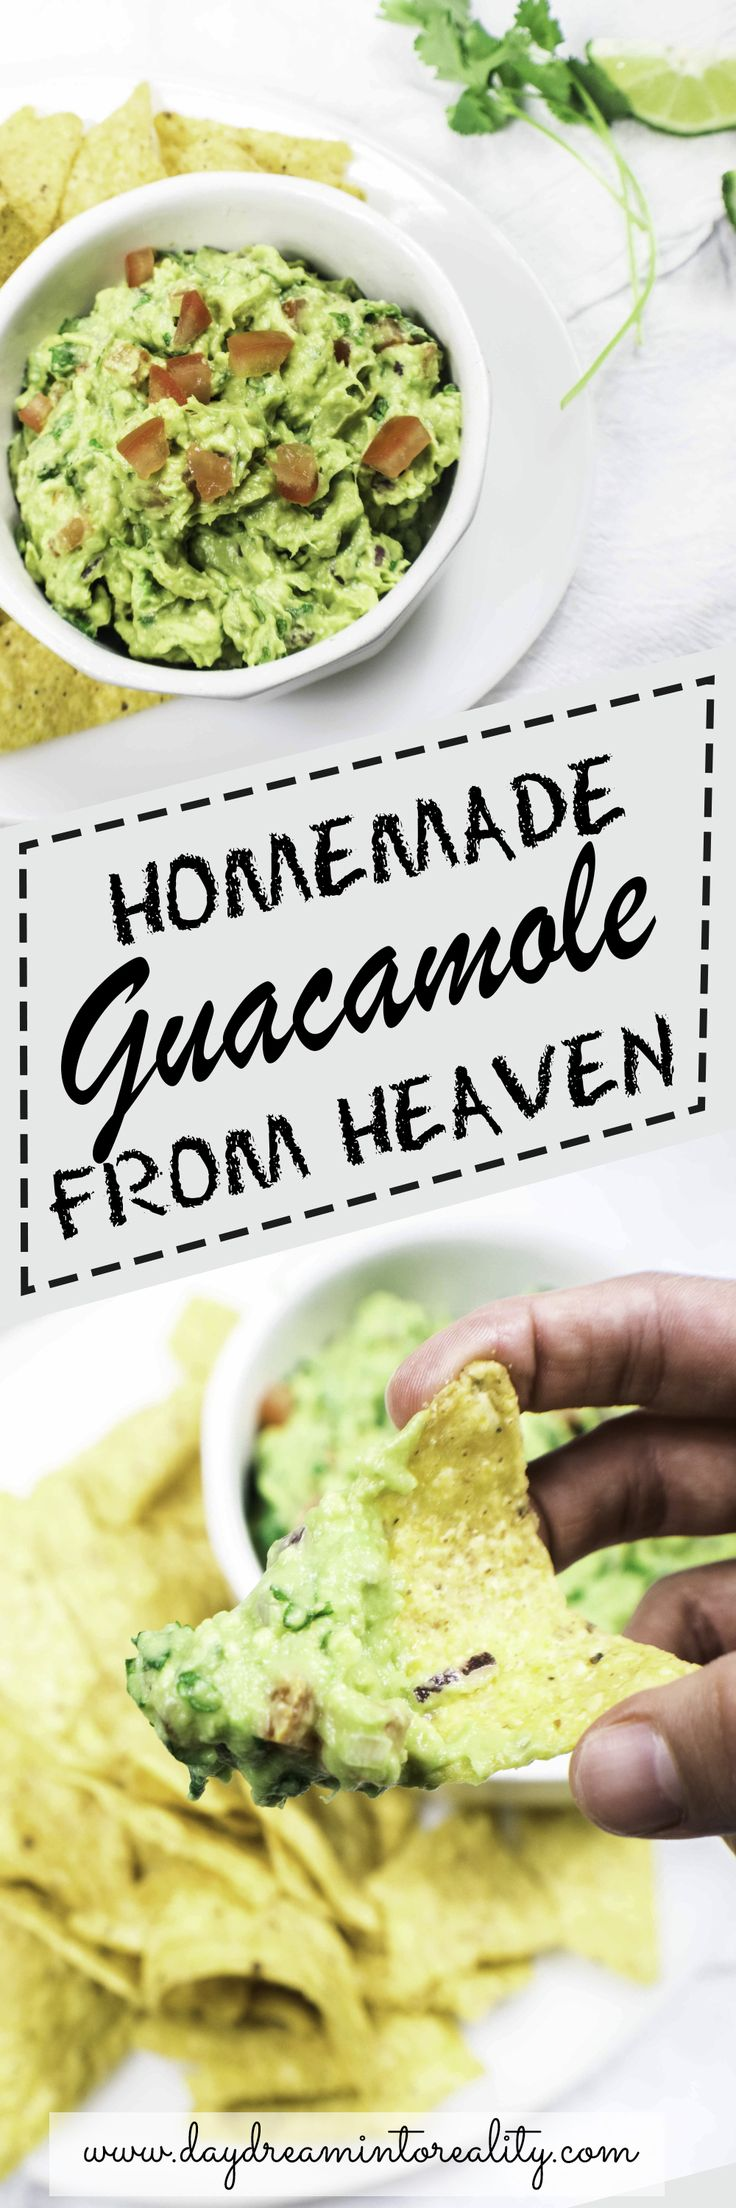 Wow, I cant believe it! This guacamole is the best one I have ever had... I am for sure keeping this recipe. Its so good that I want it all for myself! ALL!